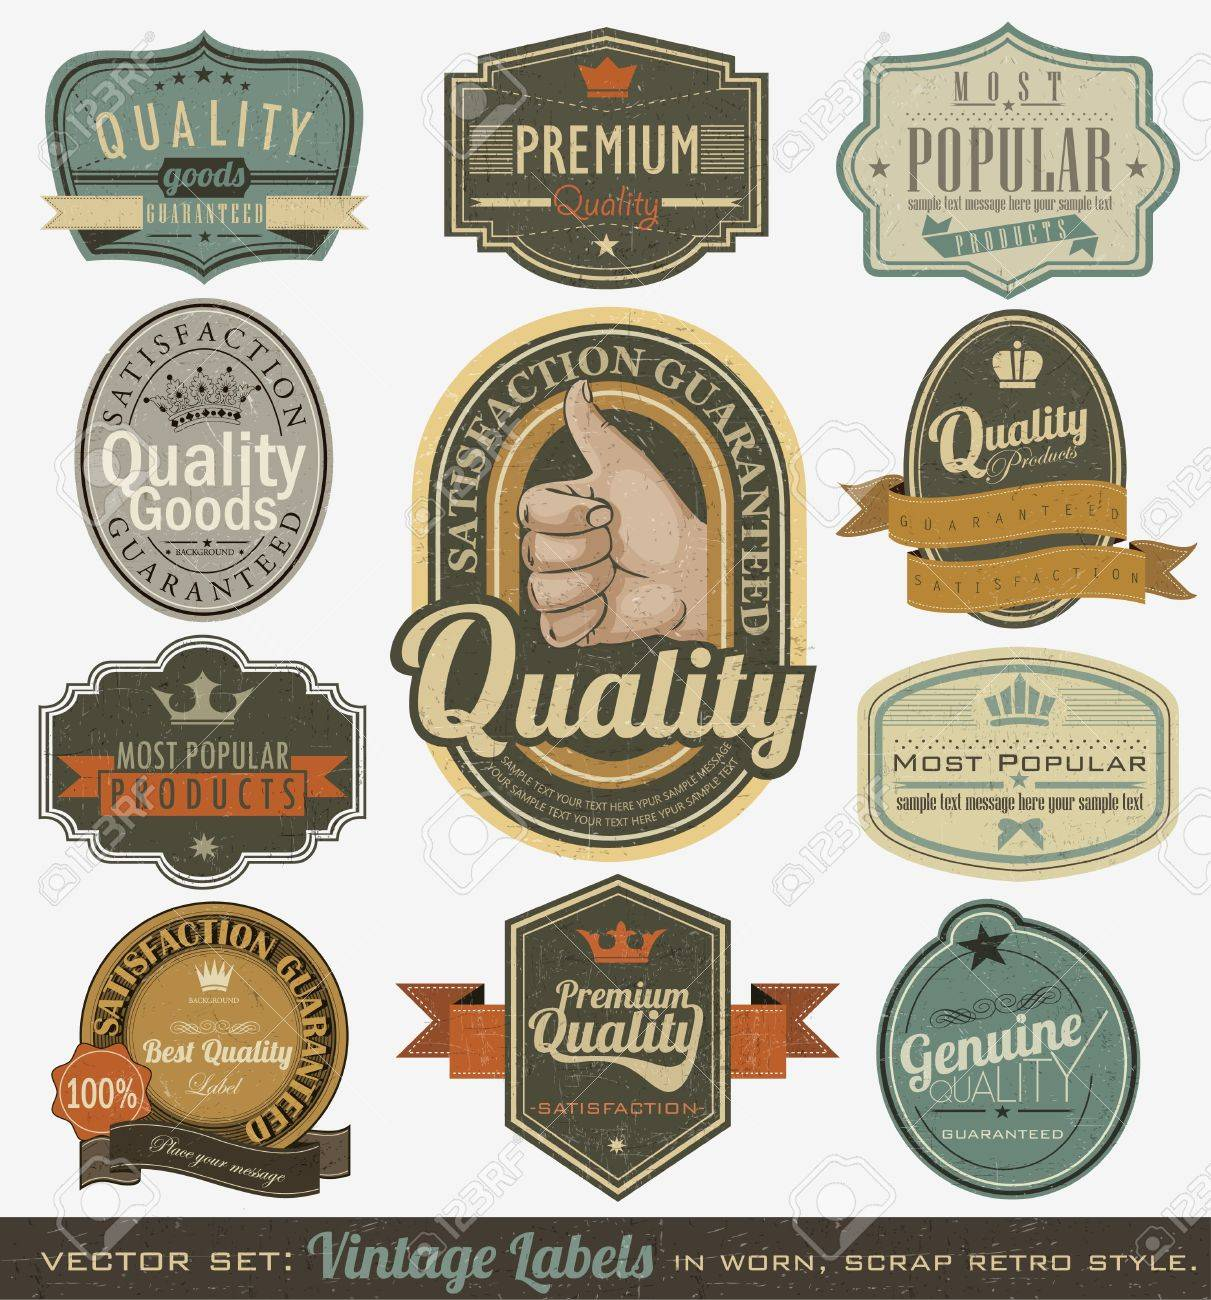 Vintage premium quality and most popular labels  Retro design Stock Vector - 14083701